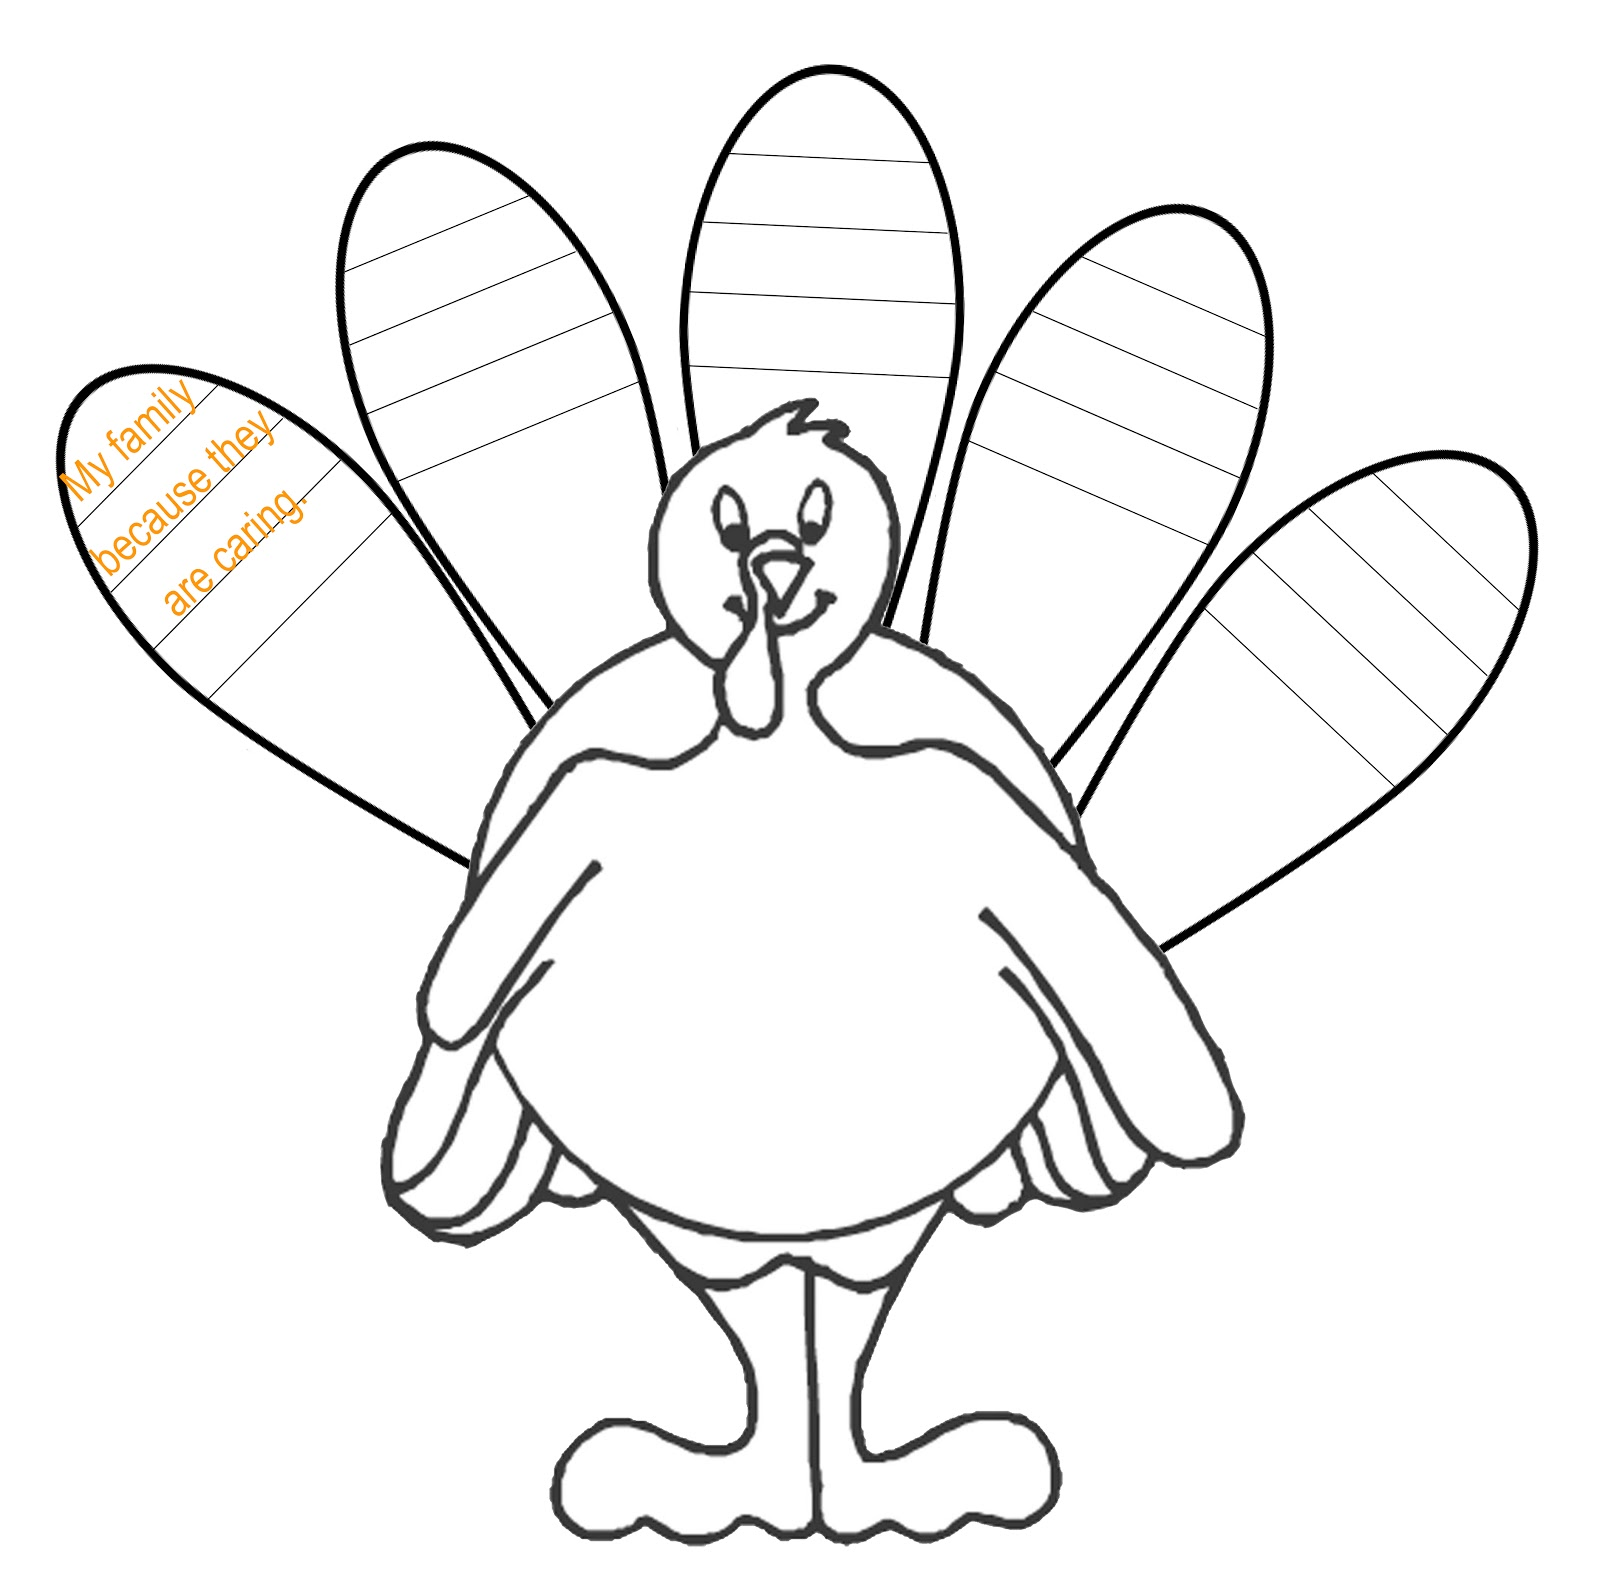 Turkey clip art coloring page. Challenge drawing template innovative